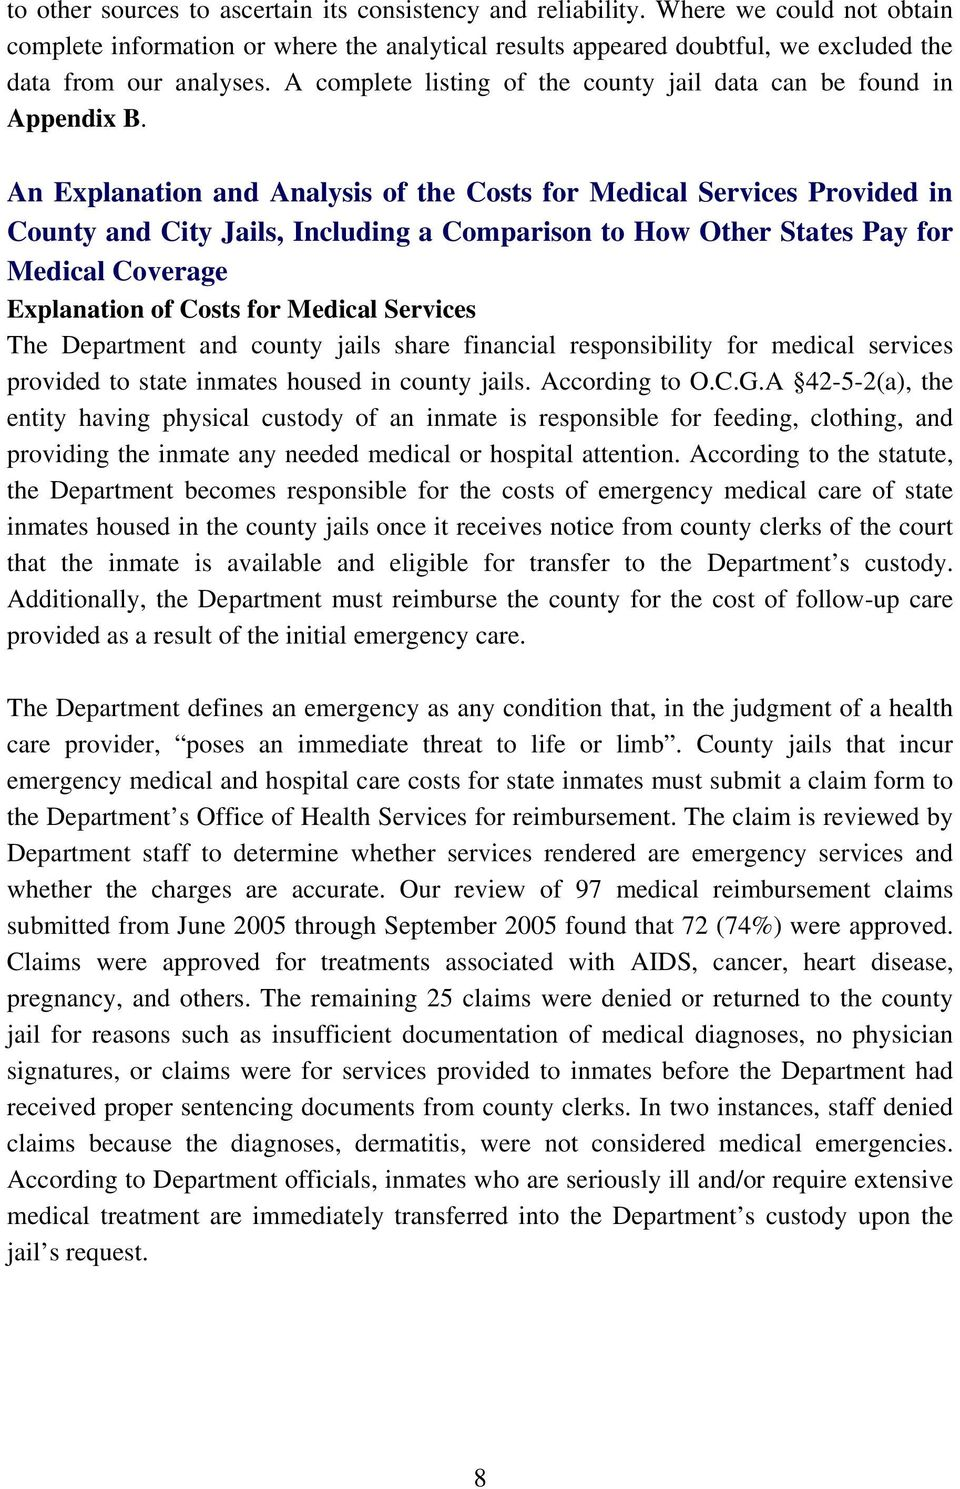 An Explanation and Analysis of the Costs for Medical Services Provided in County and City Jails, Including a Comparison to How Other States Pay for Medical Coverage Explanation of Costs for Medical